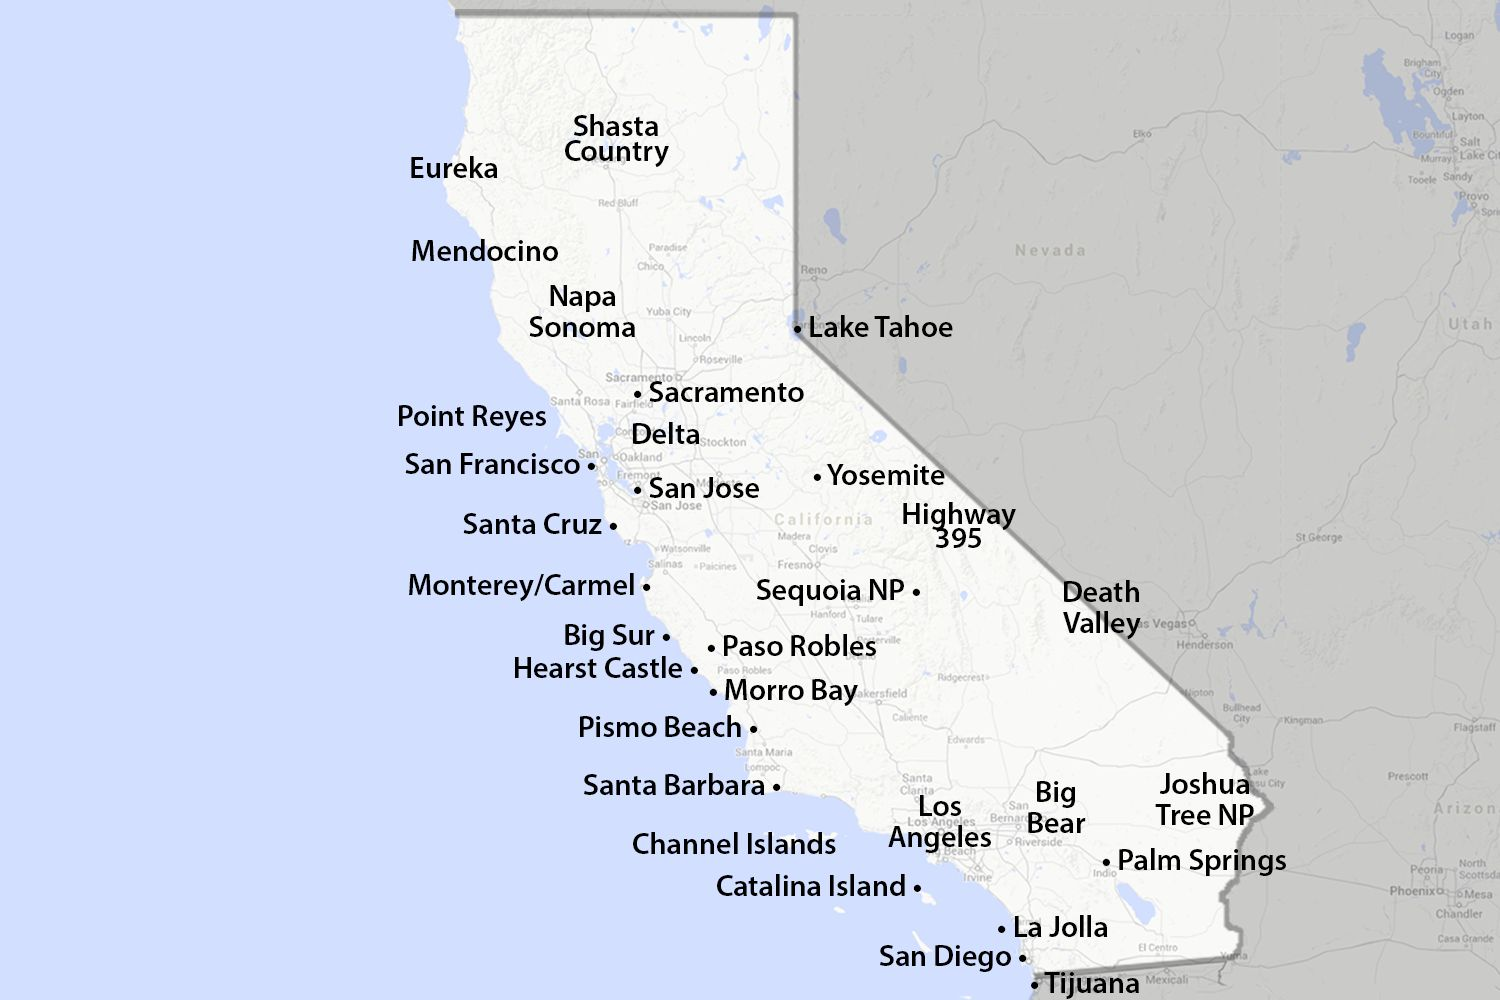 south lake tahoe hotels map with Interactive Map Of California Sights 1478372 on laketahoevacationresort together with Harrahs Laughlin together with Reno maps further Restaurant review G46004 D1069563 Reviews Brooks bar deck at edgewood tahoe Stateline lake tahoe nevada nevada also Maps City Kartor.